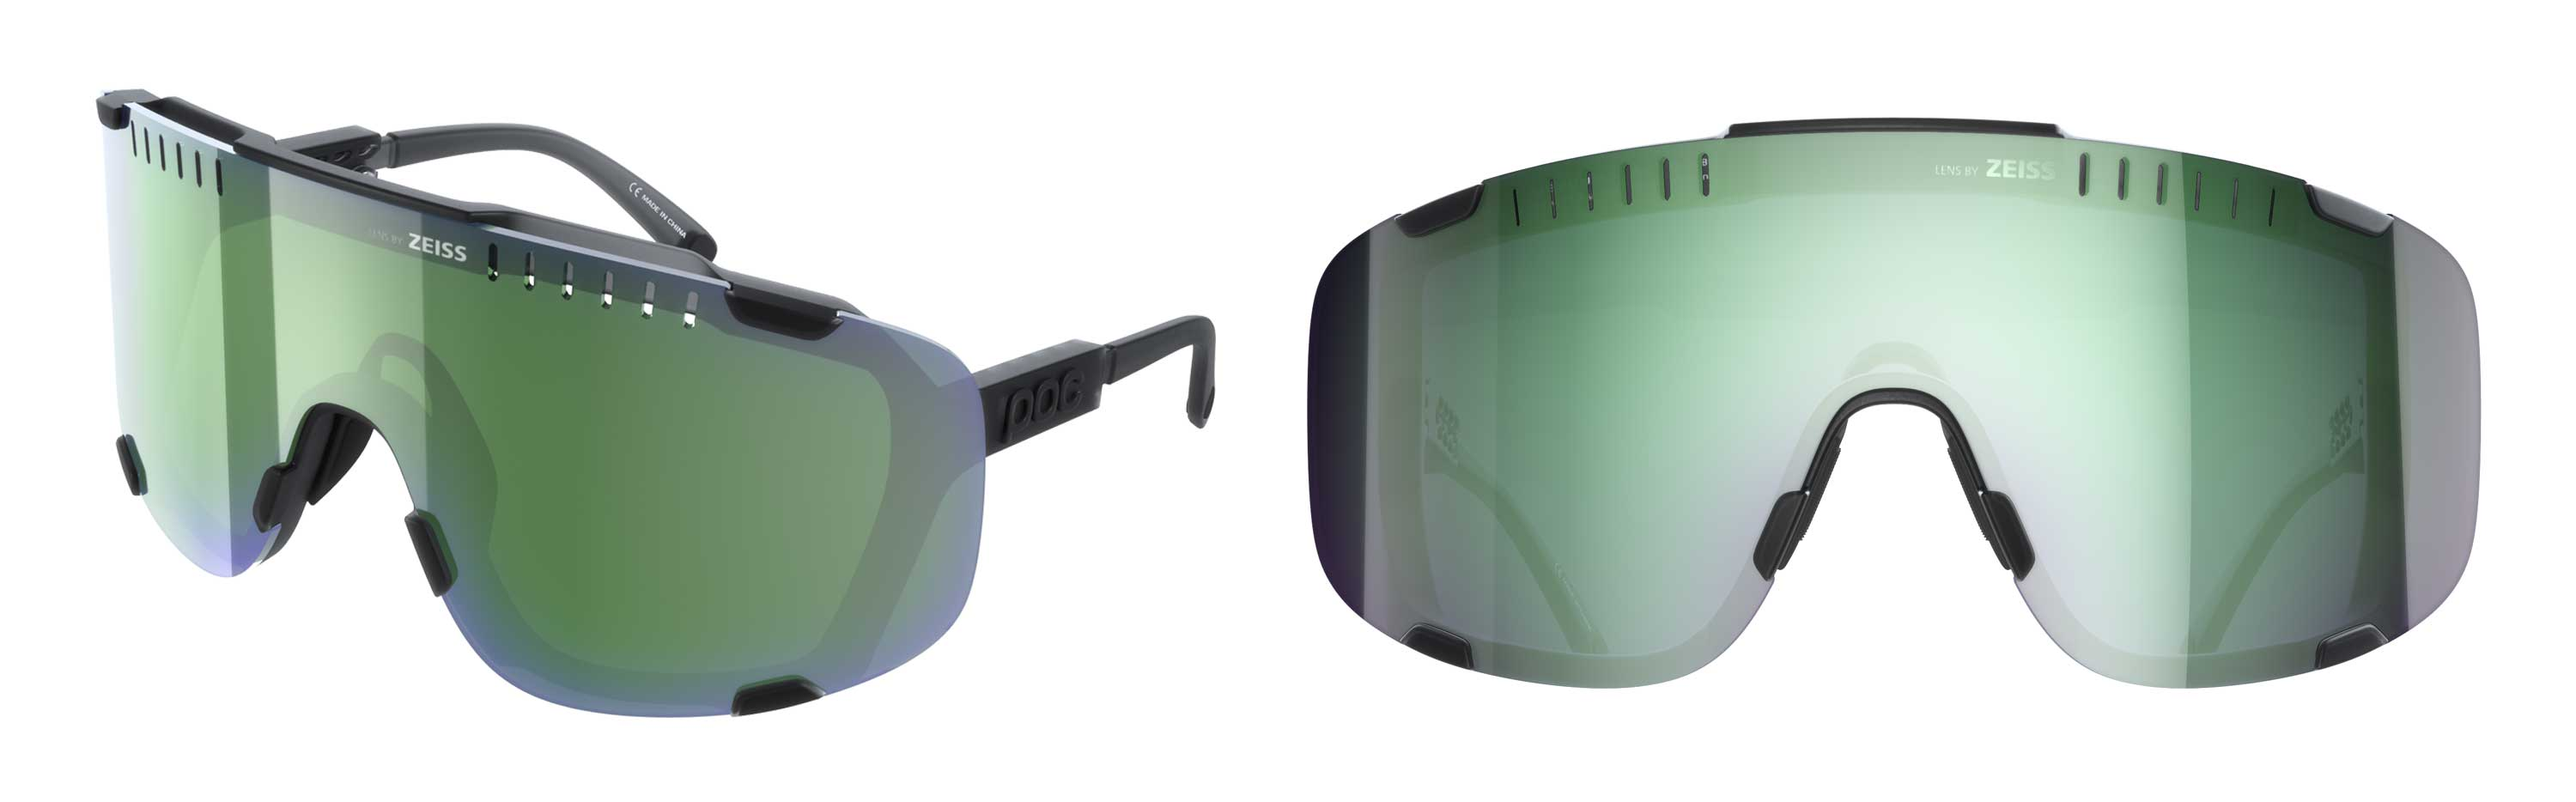 poc's devour sunglasses